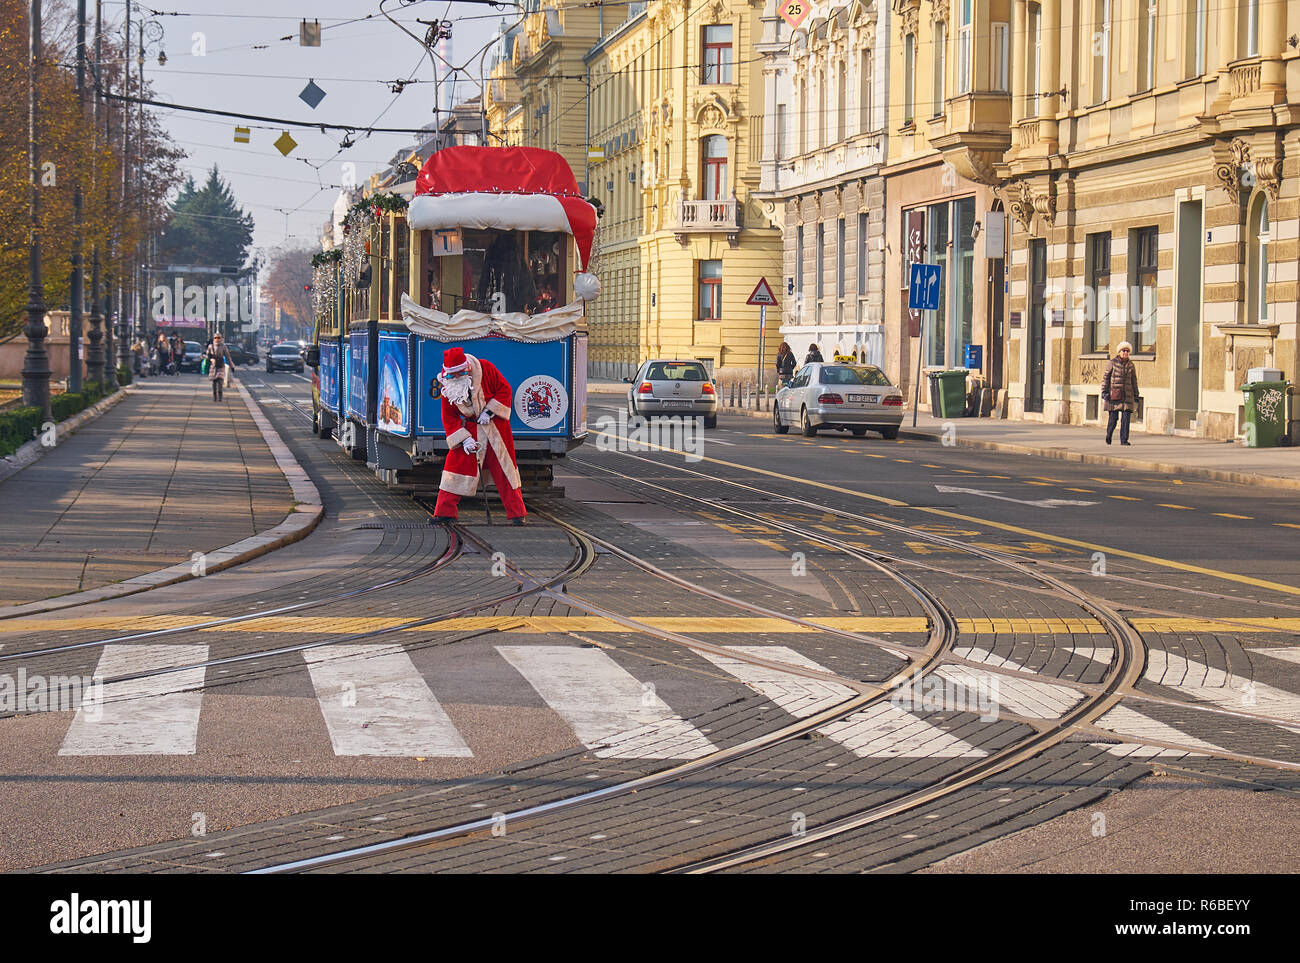 Santa operating tracks for Santa Claus tram, as part of the Advent Market celebration in Zagreb, going through the streets of the capital Stock Photo